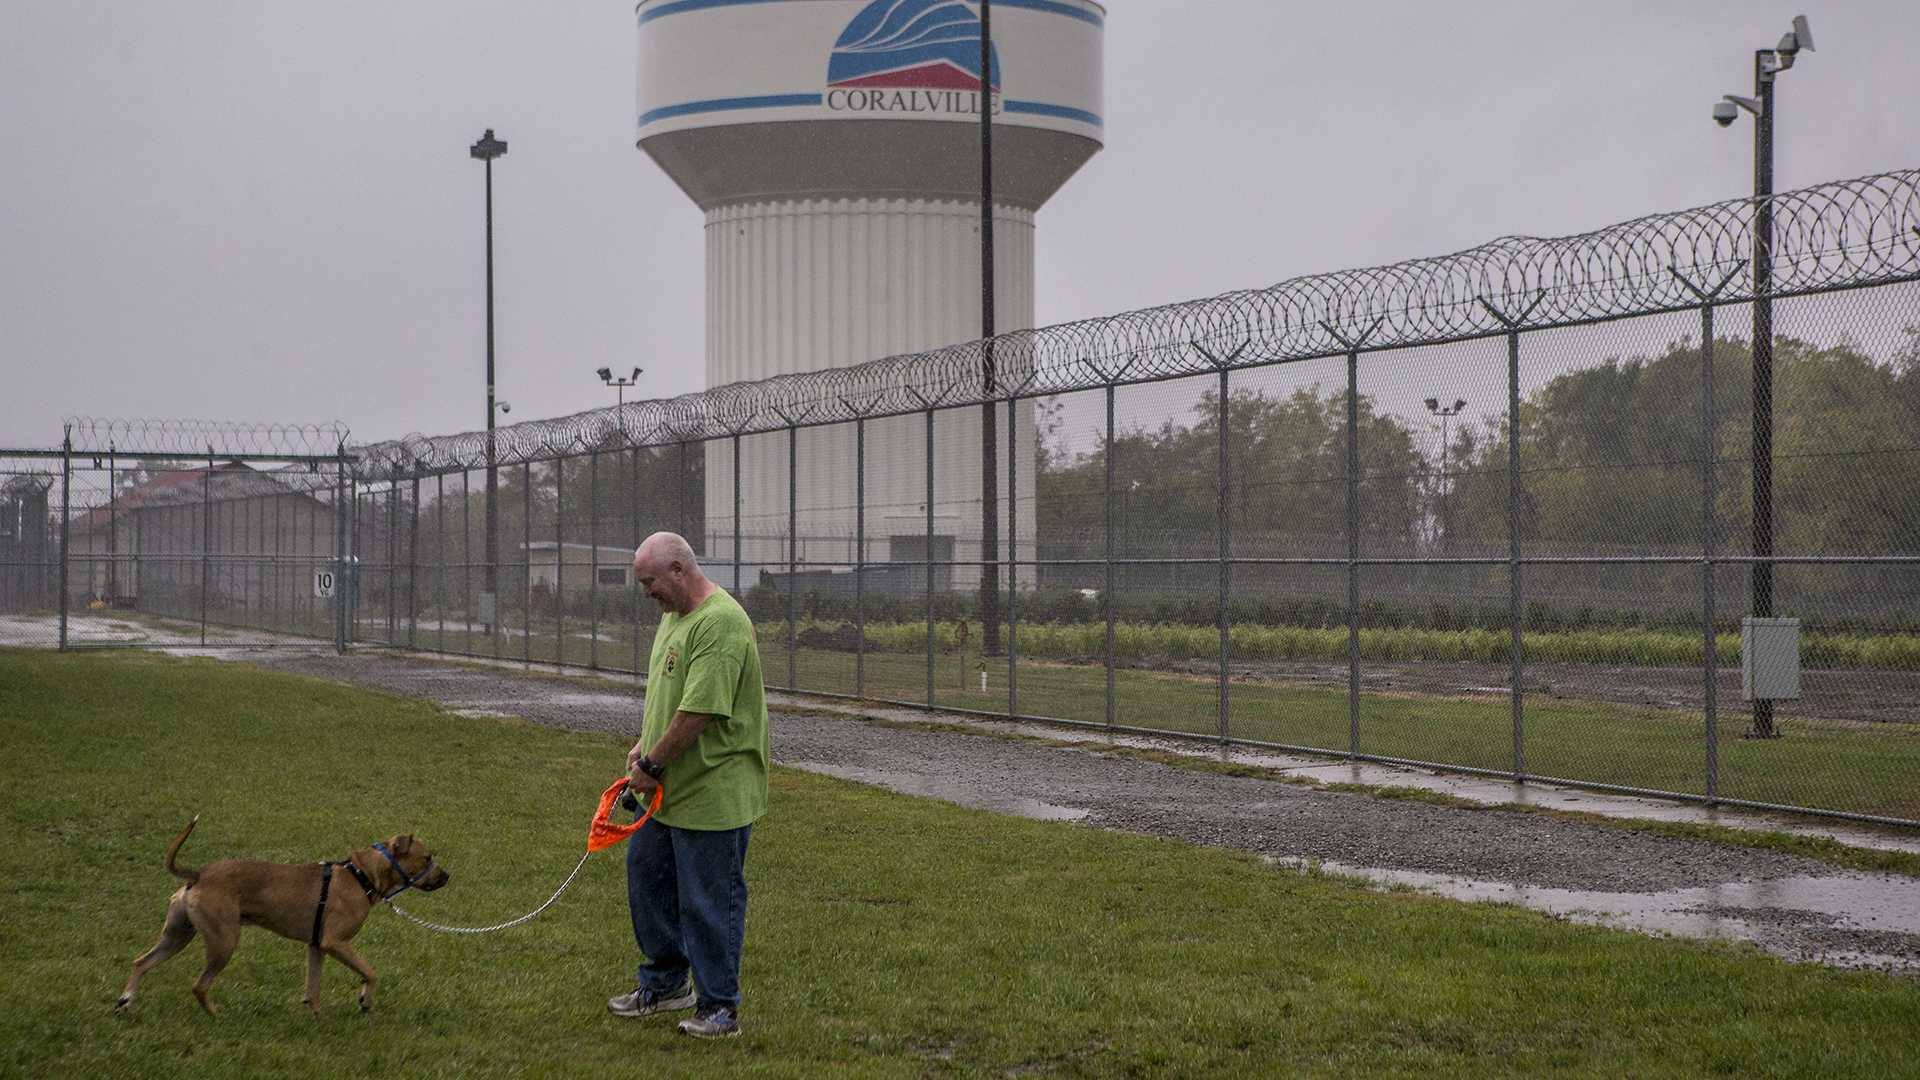 Terry, an inmate volunteer, on Tuesday walks Russ, a shelter dog who was placed at the Iowa Medical & Classification Center as part of a program in which inmates teach shelter dogs obedience and help to rehabilitate them for adoption or placement. (Nick Rohlman/The Daily Iowan)